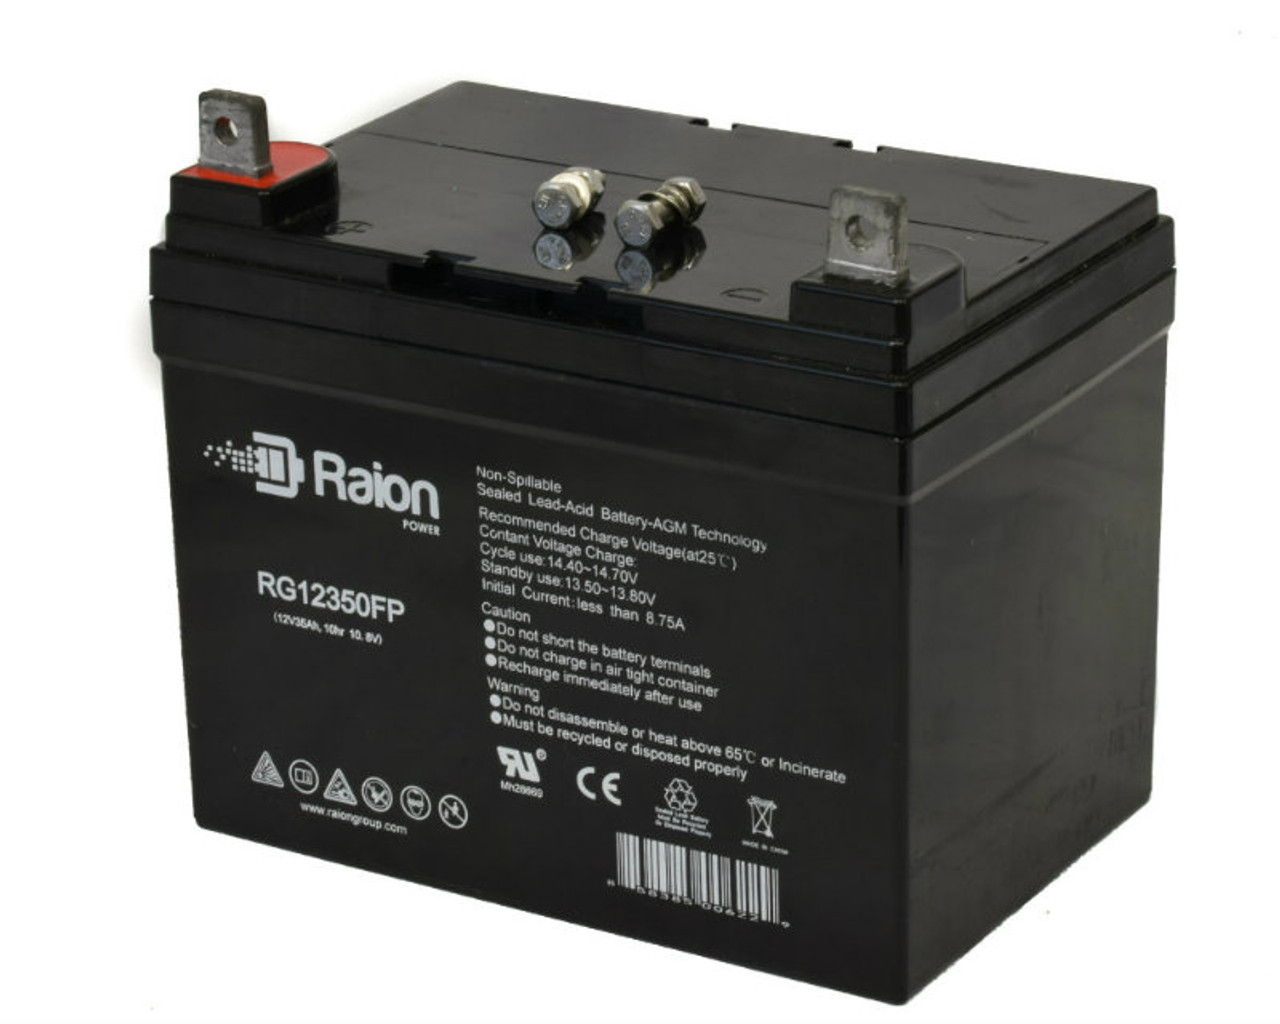 Raion Power RG12350FP Replacement Wheelchair Battery For Electric Mobility Lil Viva 250 PC (1 Pack)